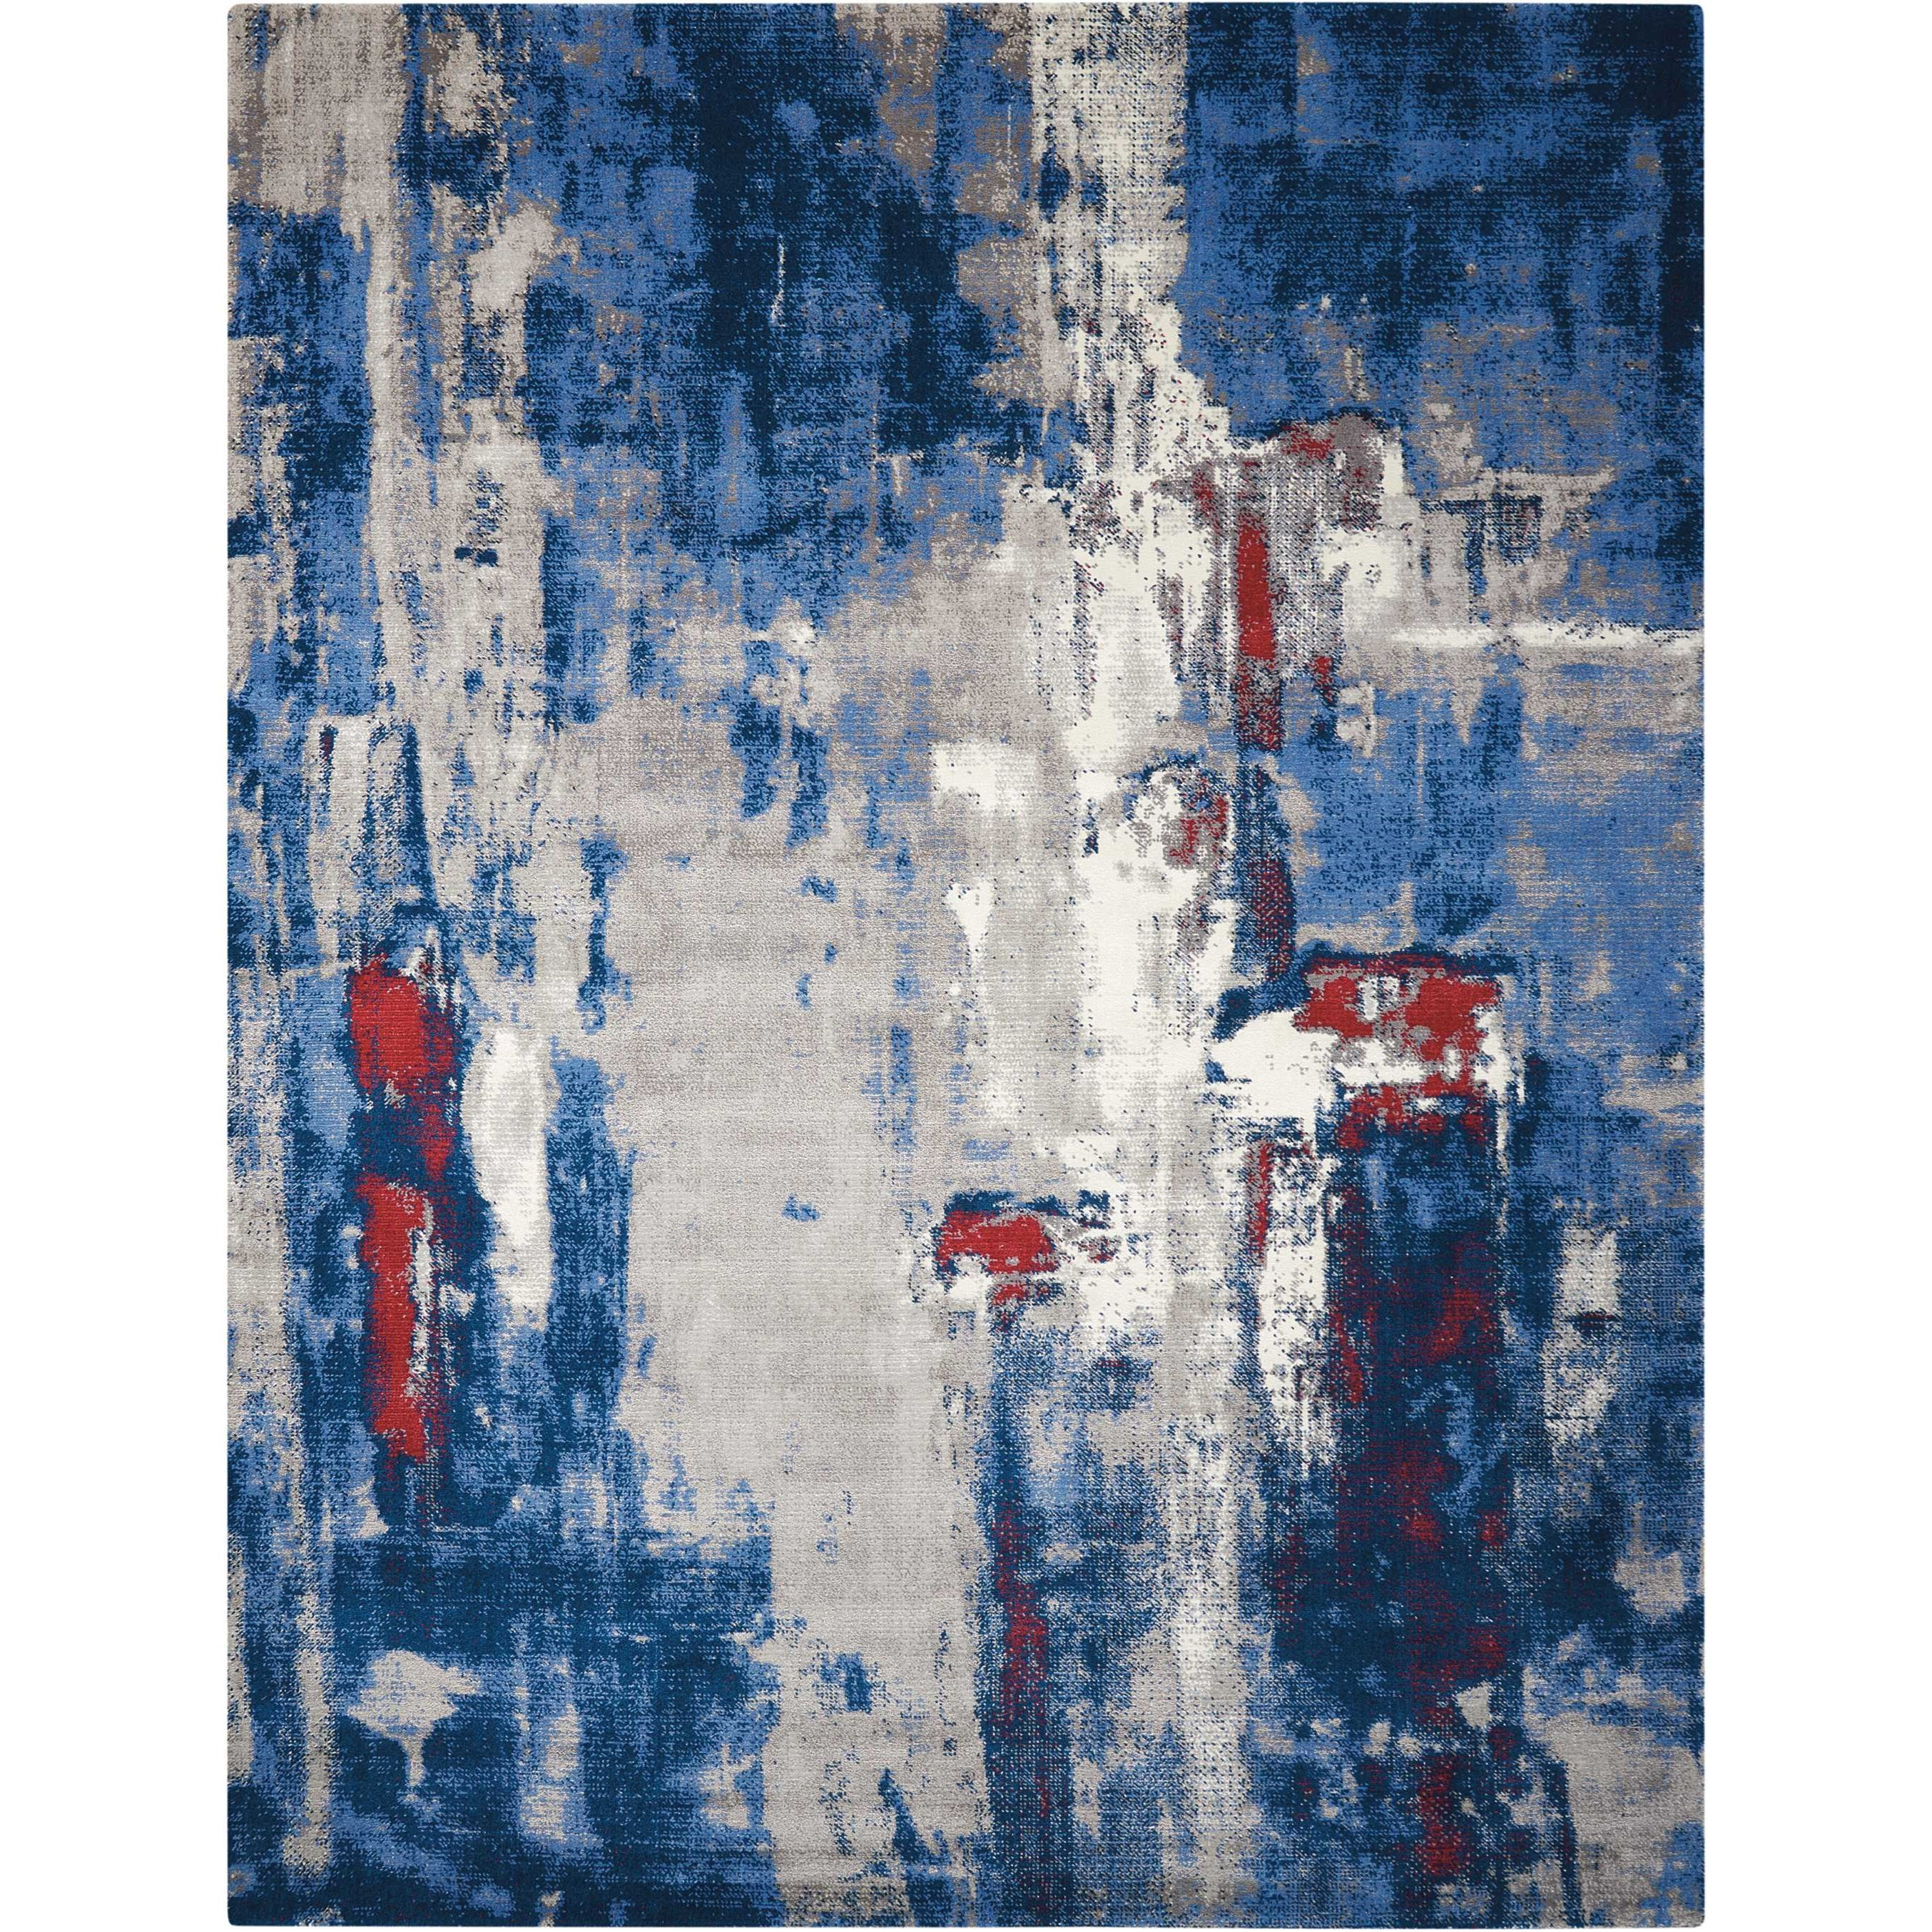 """Twilight1 7'9"""" X 9'9"""" Gry/Bl Rug by Nourison at Home Collections Furniture"""